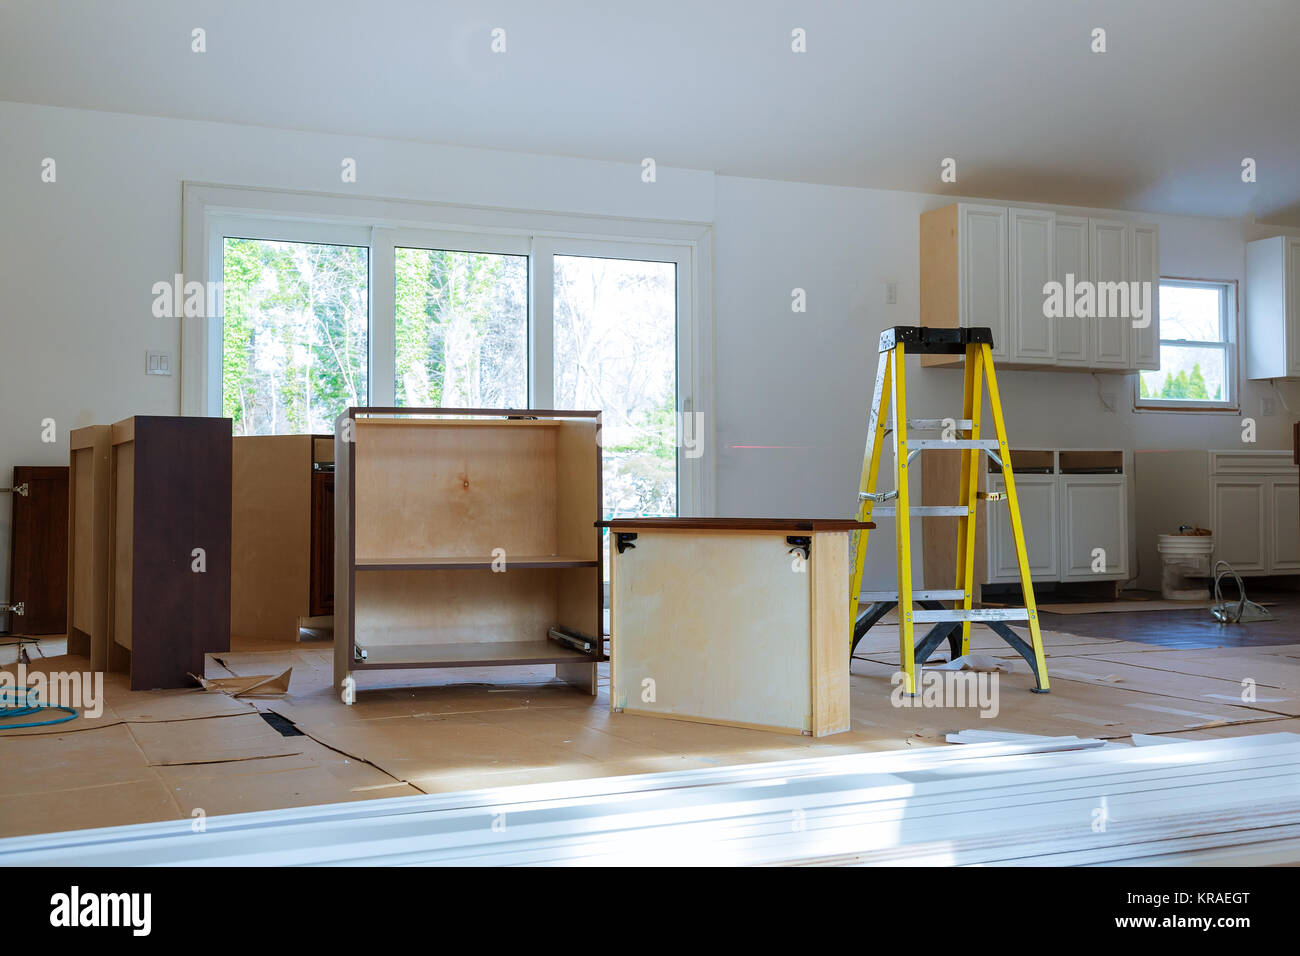 Installing new induction hob in modern kitchen Installation of kitchen cabinet. Stock Photo